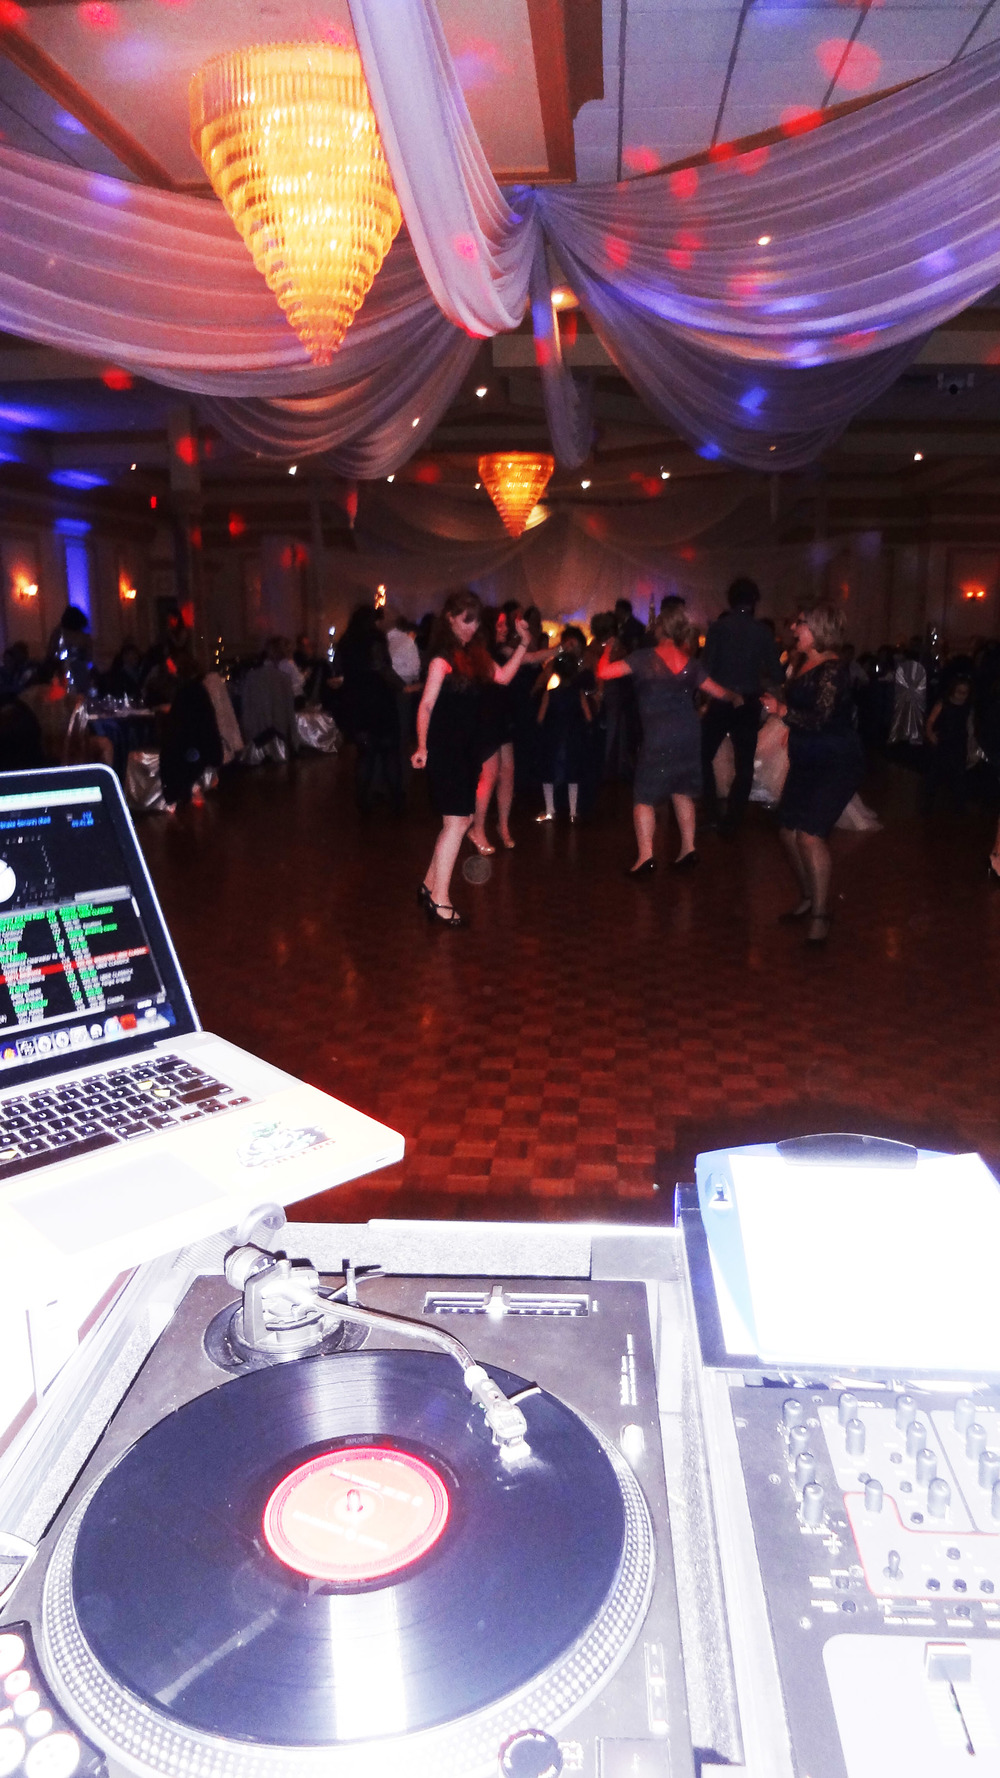 Turntables Dj Set Up Dance Floor Del Vinyl Premier Place.jpg